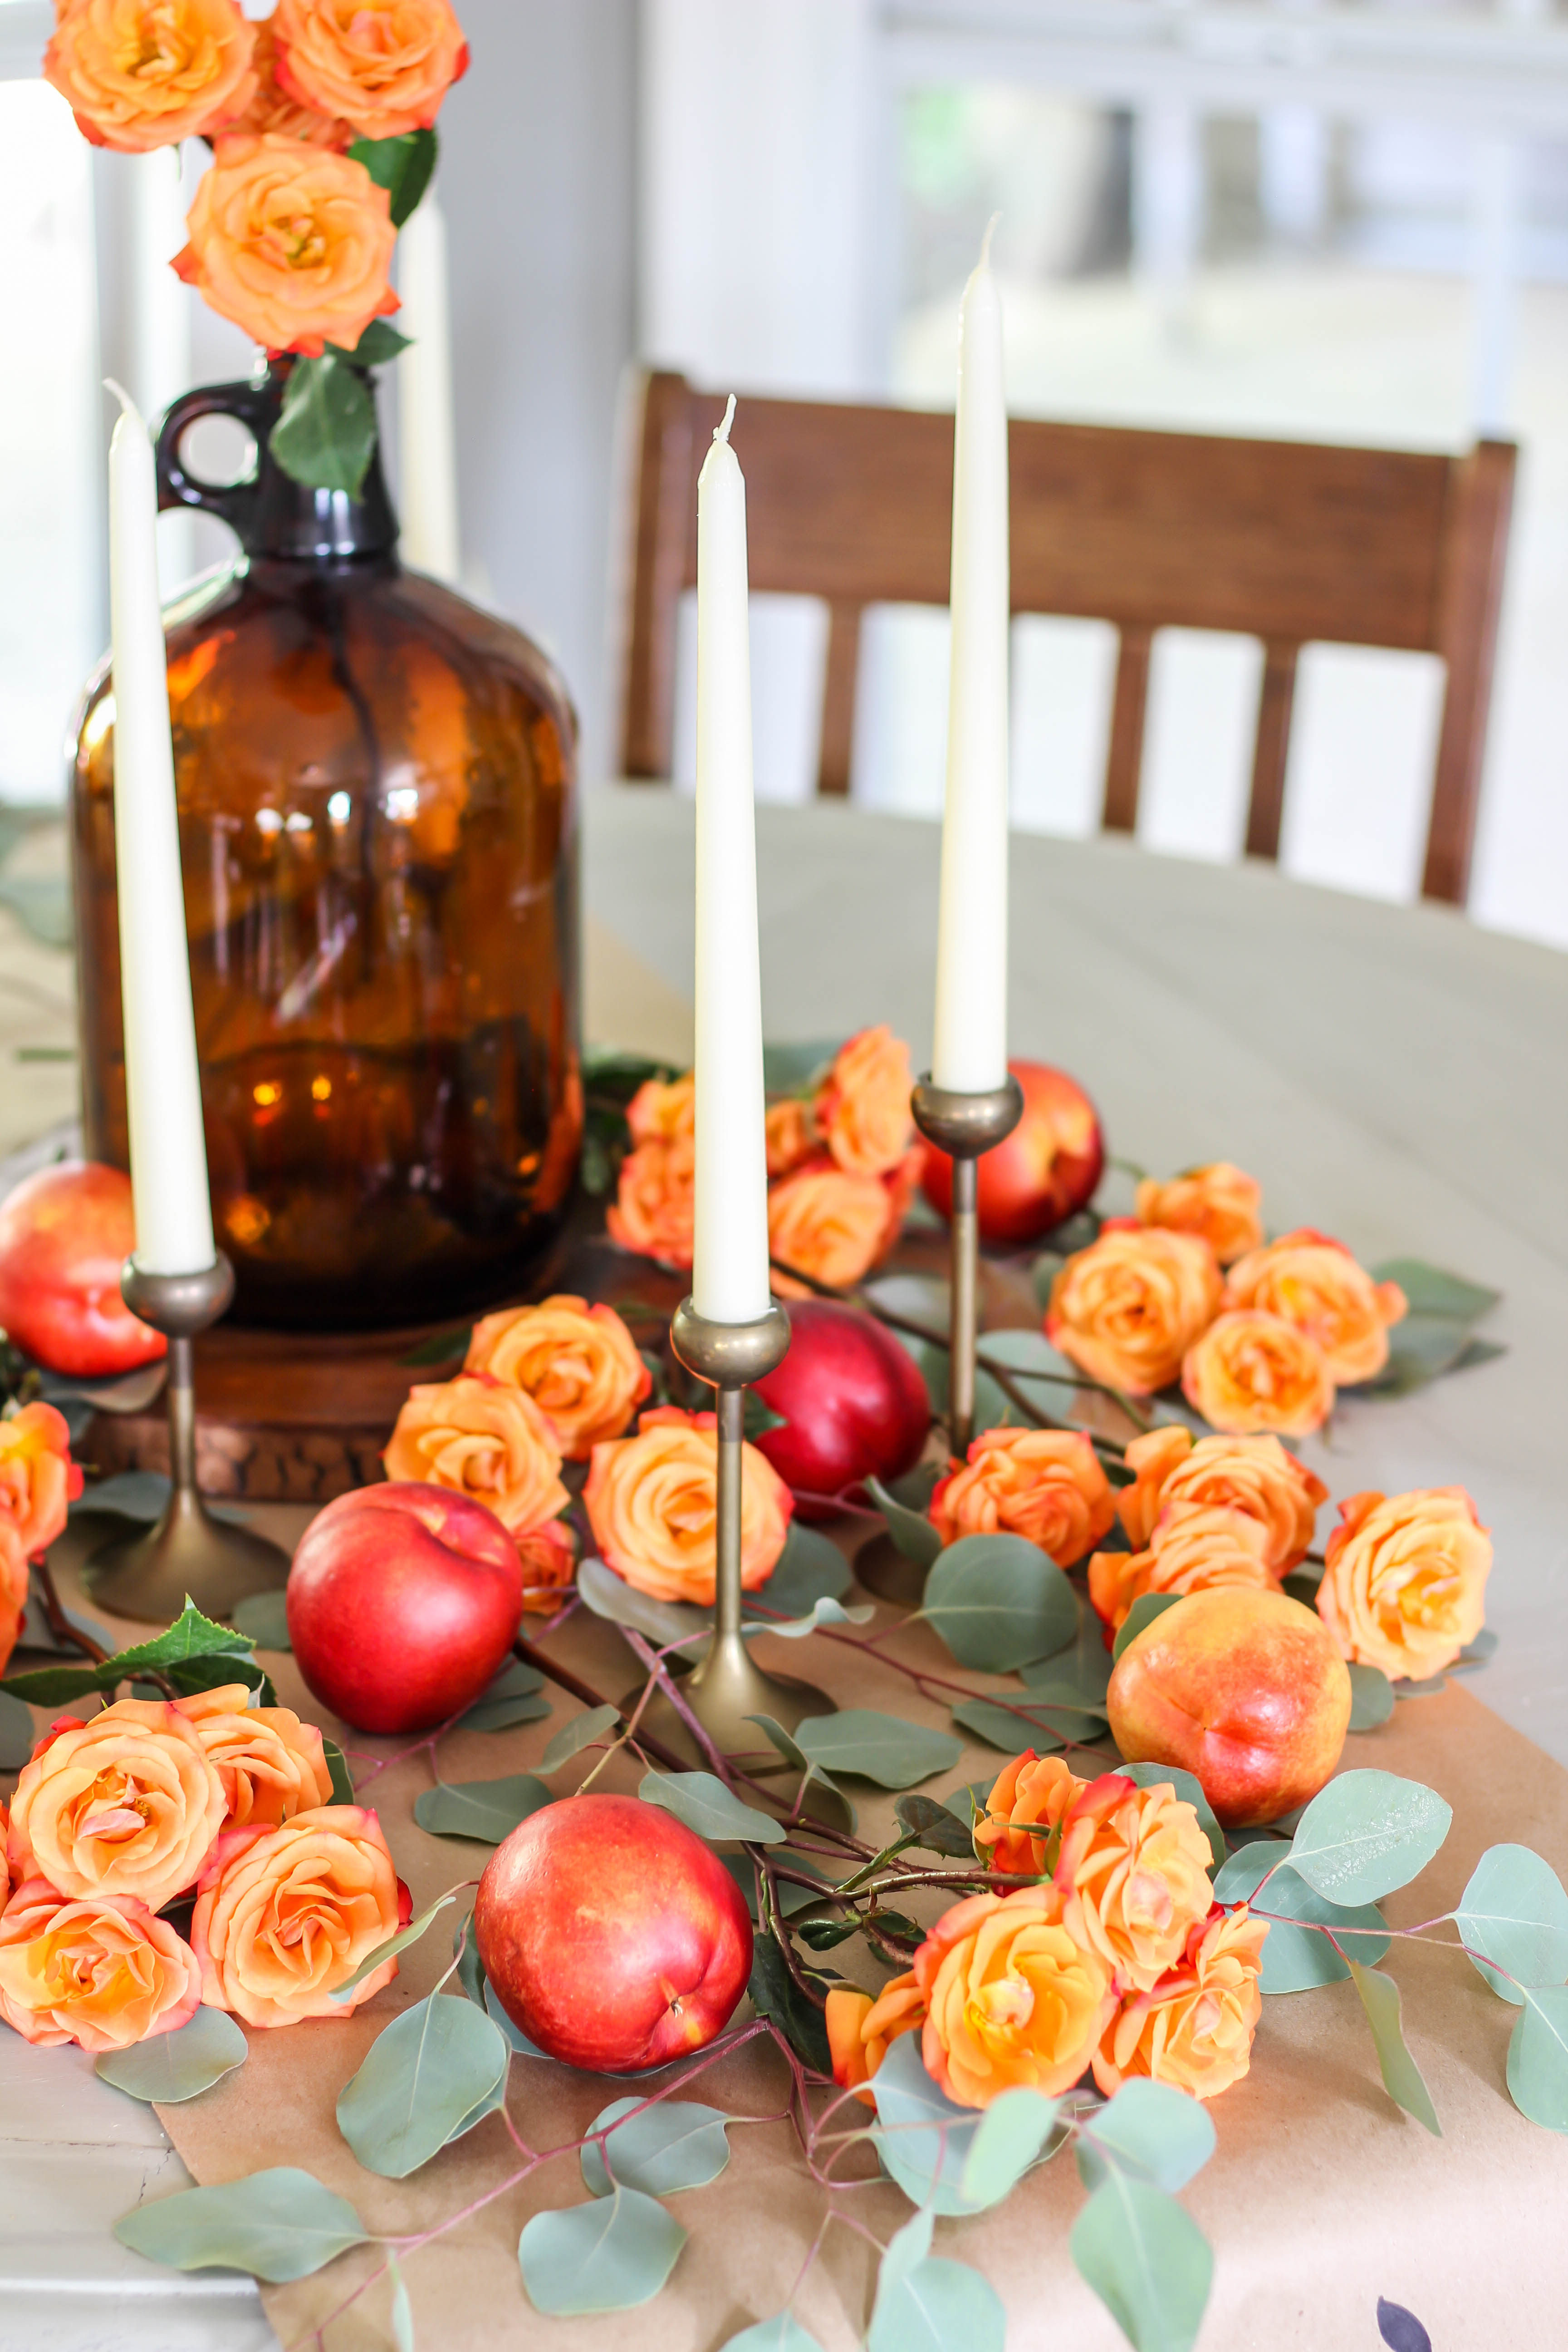 How I created a fall tablescape using fresh fruit and florals. This tablescape has so much color and texture that is perfect for fall.